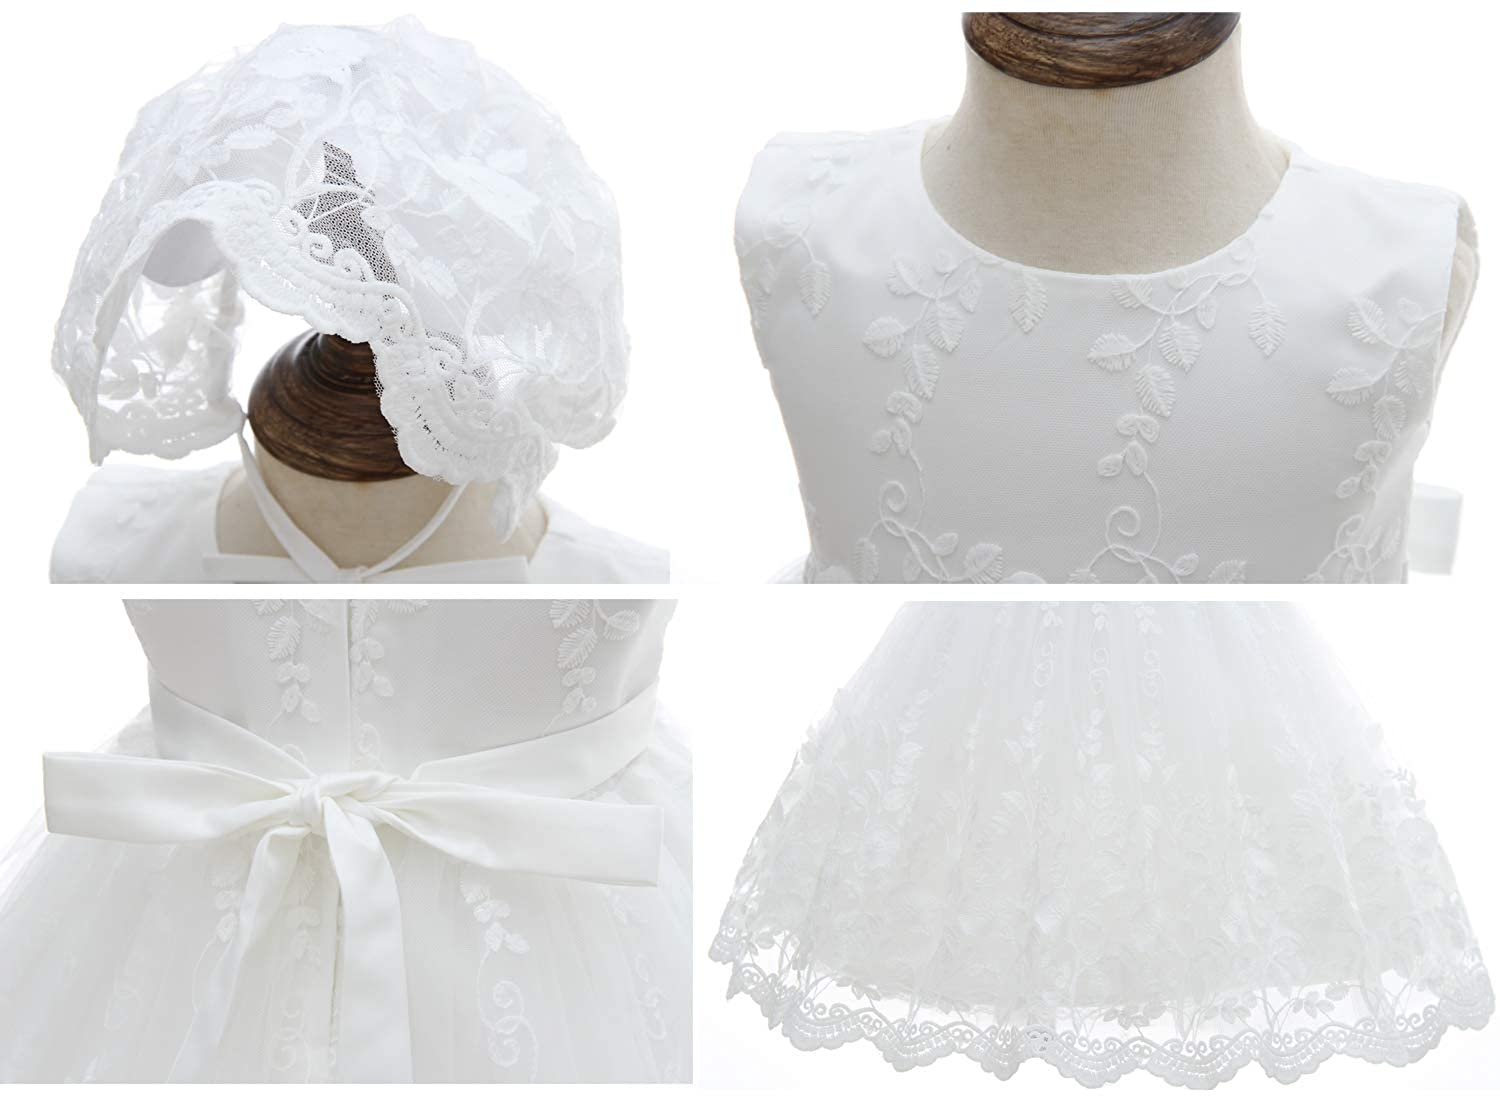 2ba3b5d09 Amazon.com: Silver Mermaid Baby Girl Christening Dress 2 Piece Floral Lace  Christening Gown Baptism Dress Set: Clothing